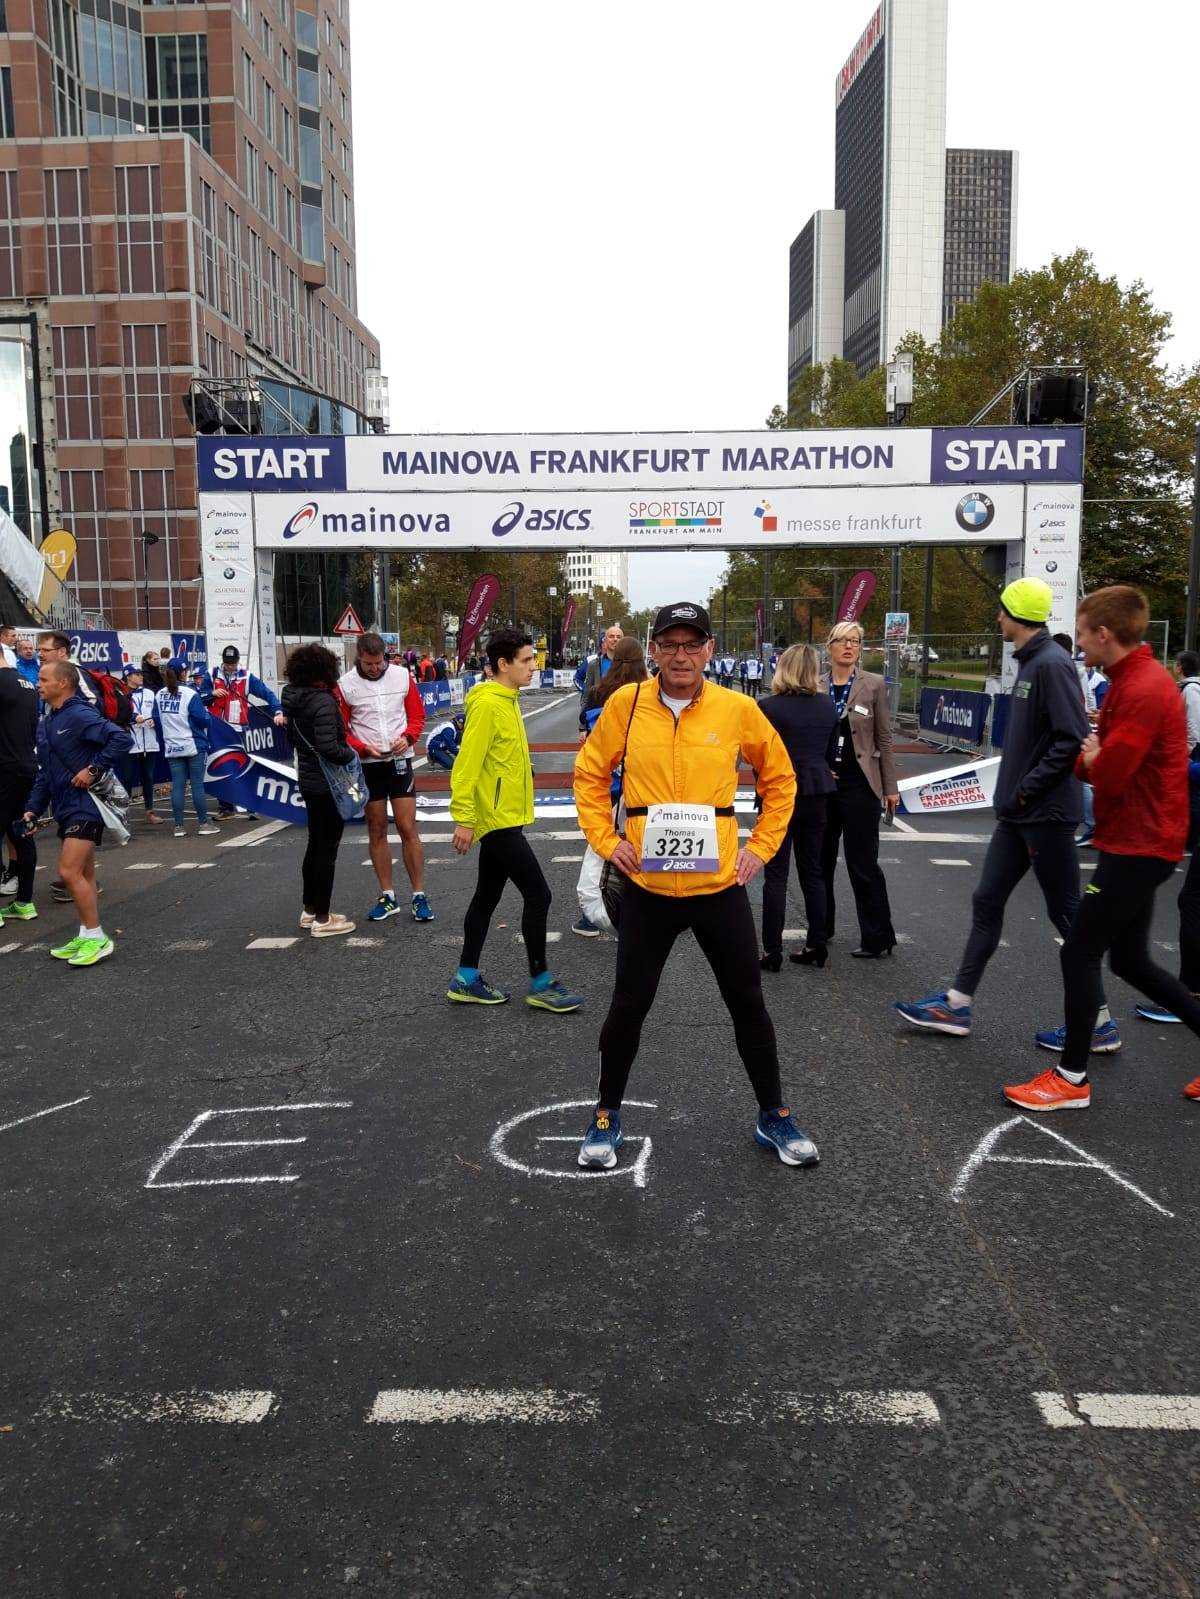 2019-10-27 FrankfurtMarathon-Thomas-Start